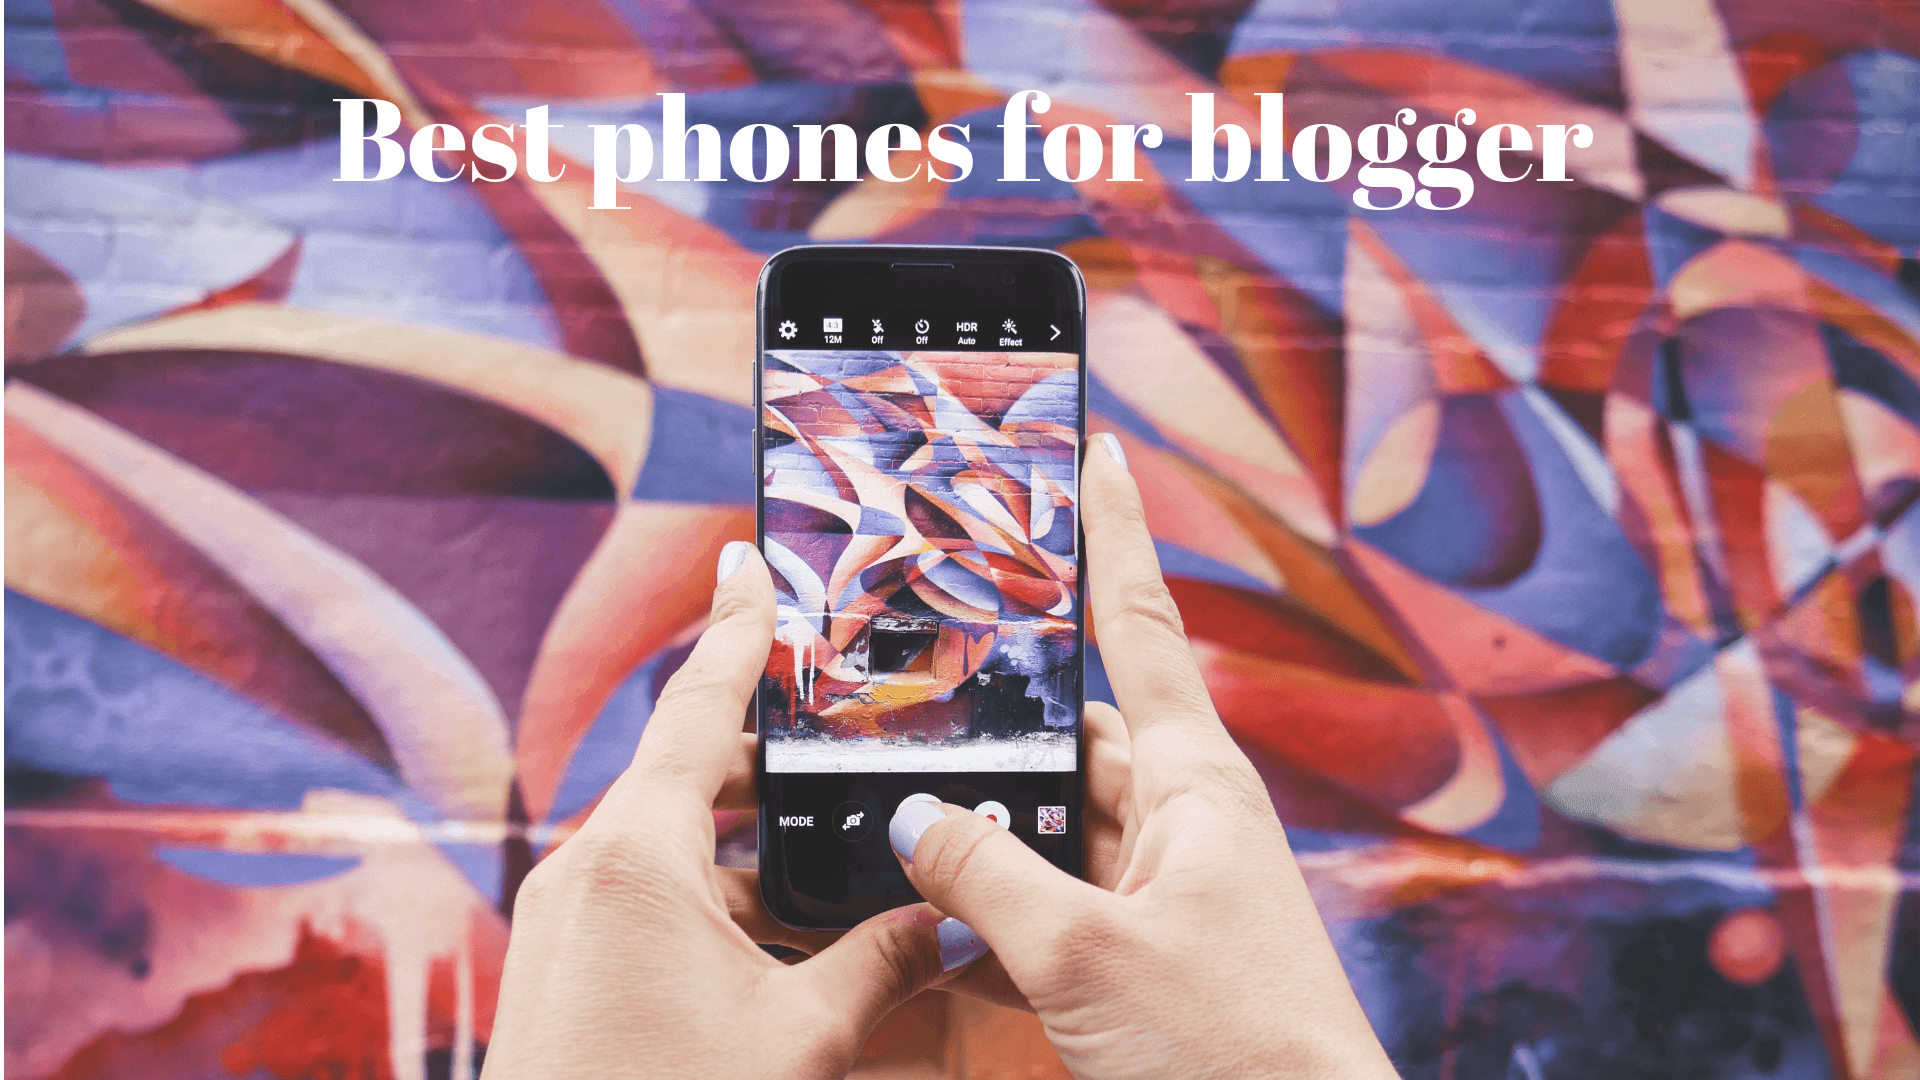 Best Phones For Blogger- Android Or iPhone?